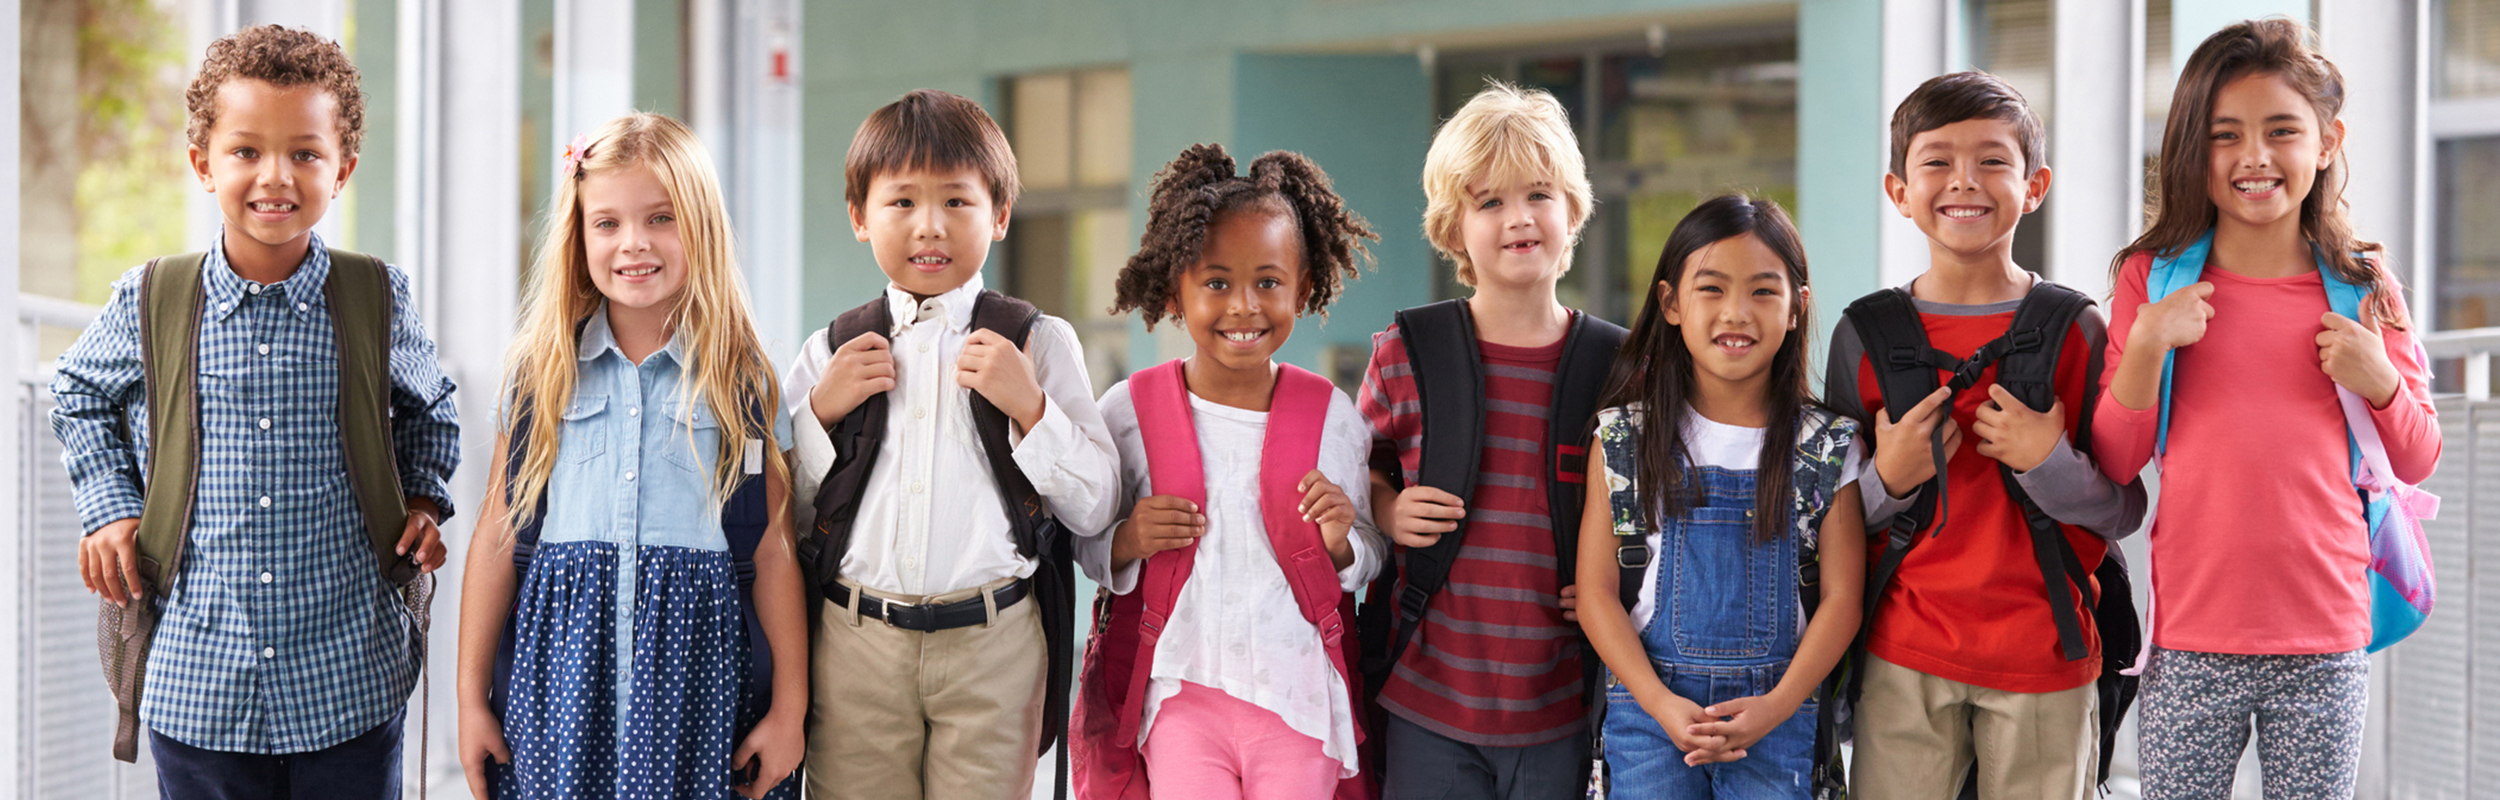 Students Standing in Line with Backpacks